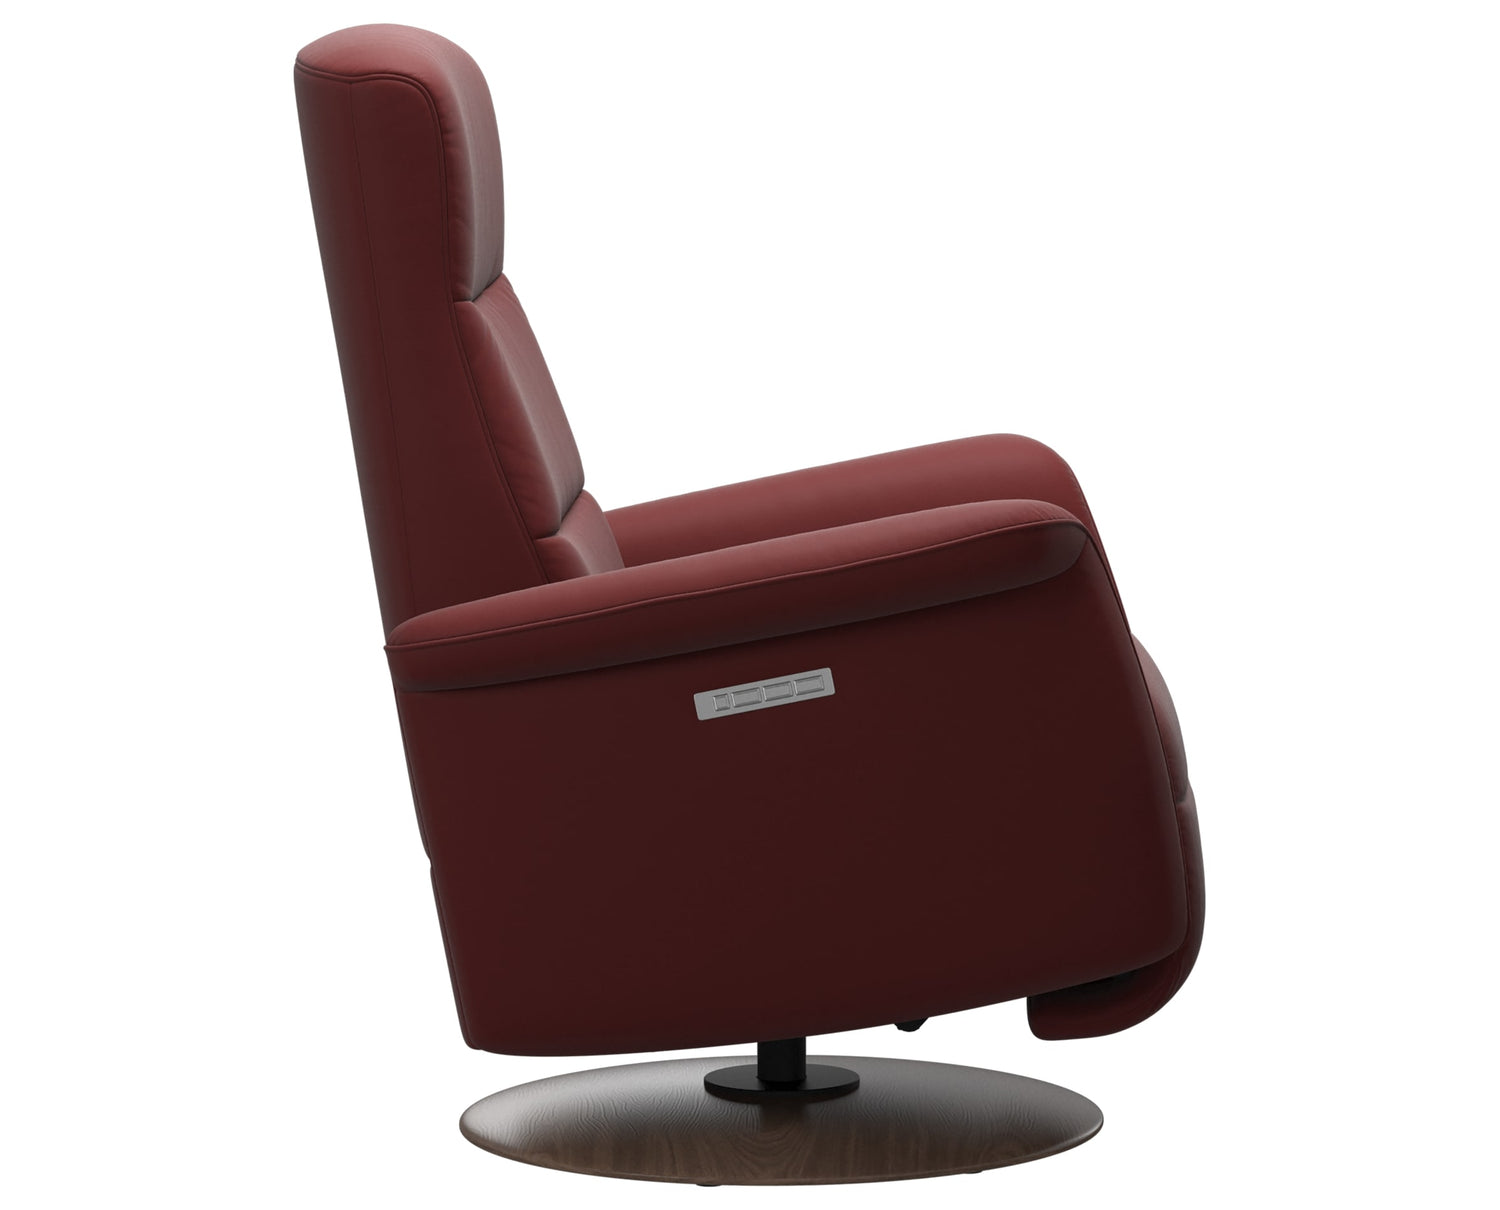 Paloma Leather Cherry S/M/L & Walnut Base | Stressless Mike Recliner | Valley Ridge Furniture